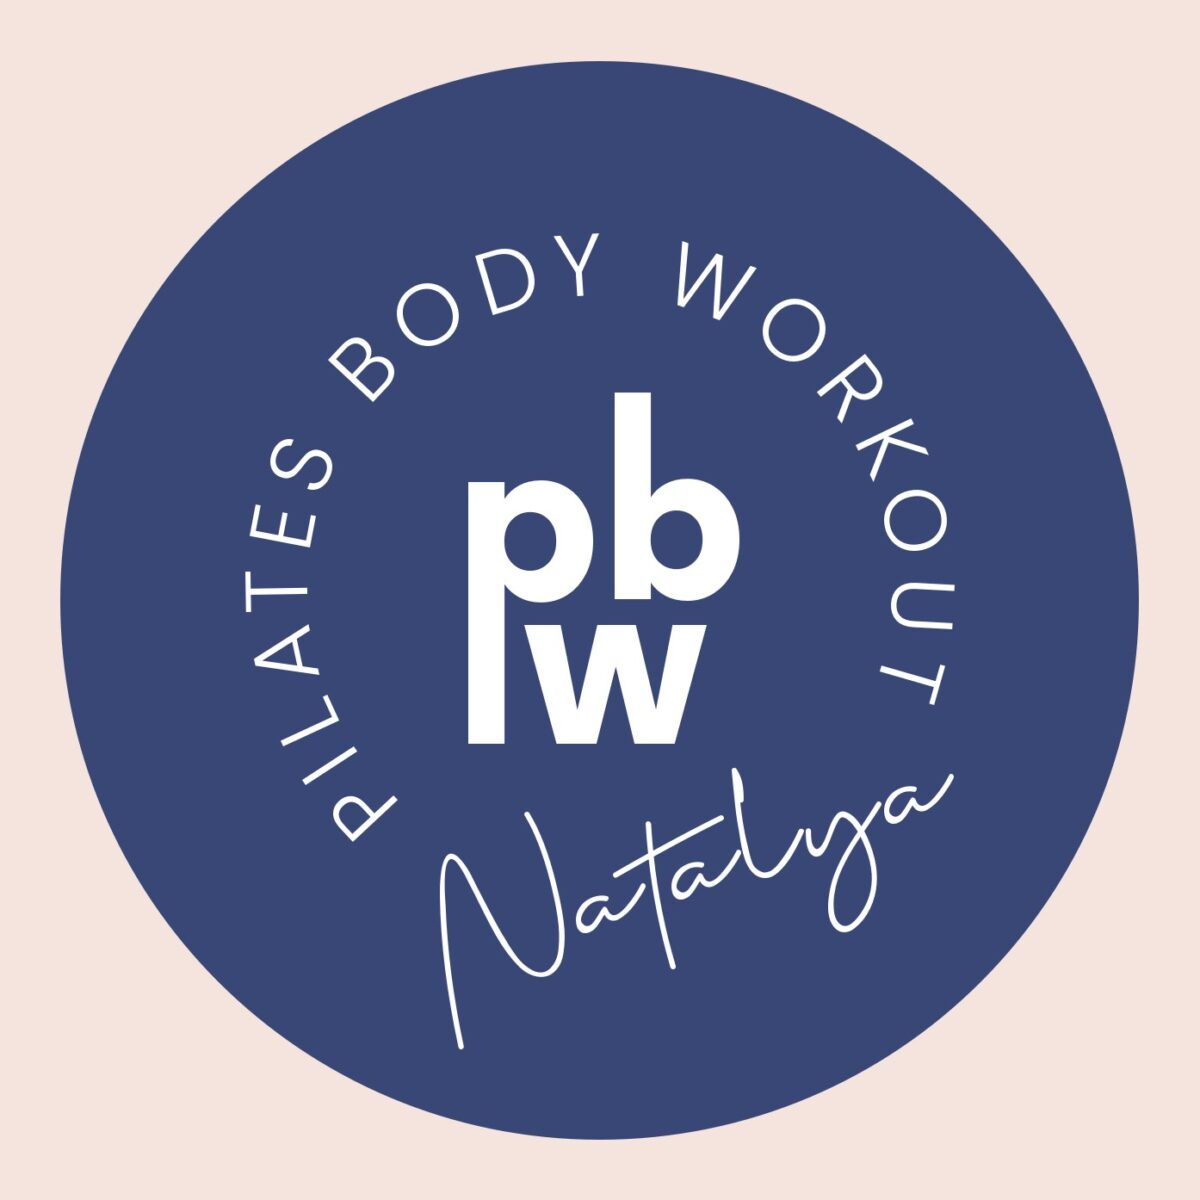 The Pilates Body Workout secondary logo in white on a navy blue circular decal on a pink square background